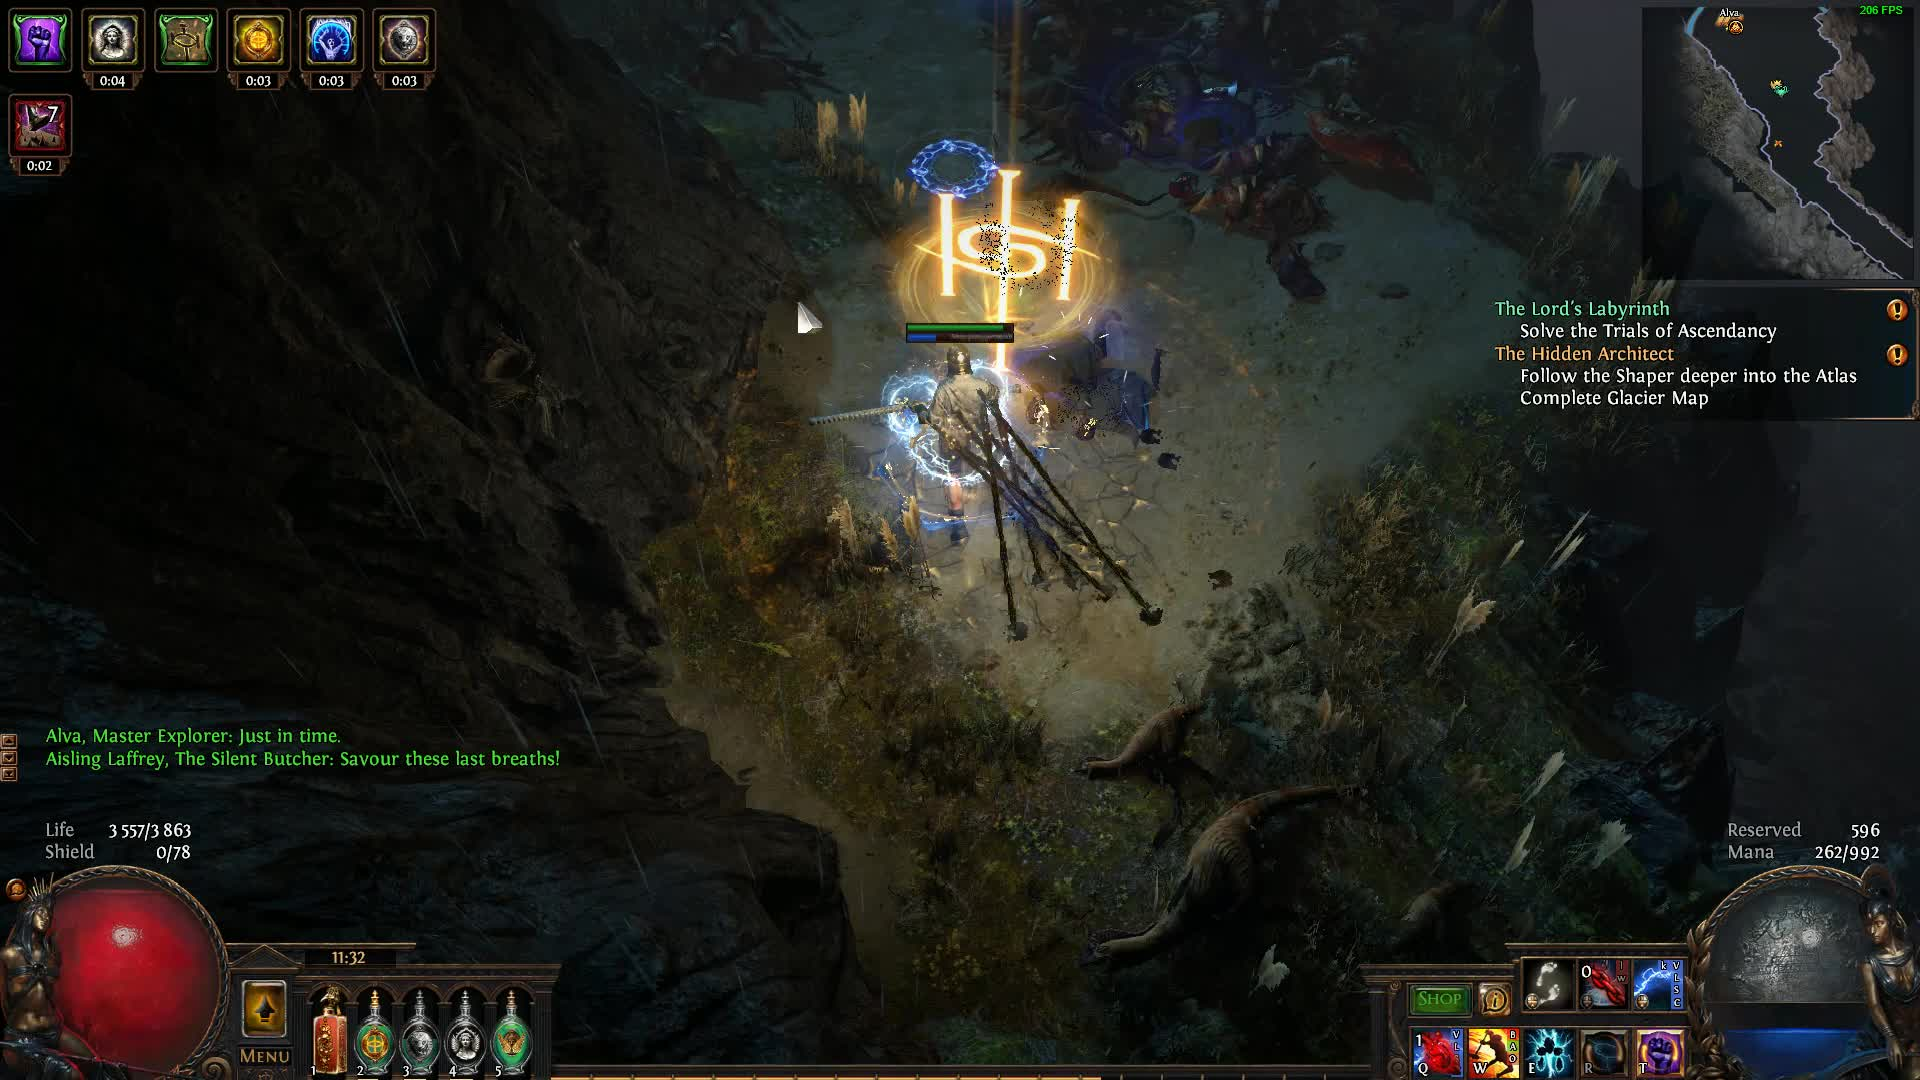 pathofexile, vlc-record-2019-02-09-11h34m05s-Path Of Exile 2019.02.09 - 11.33.33.04.DVR.mp4- GIFs